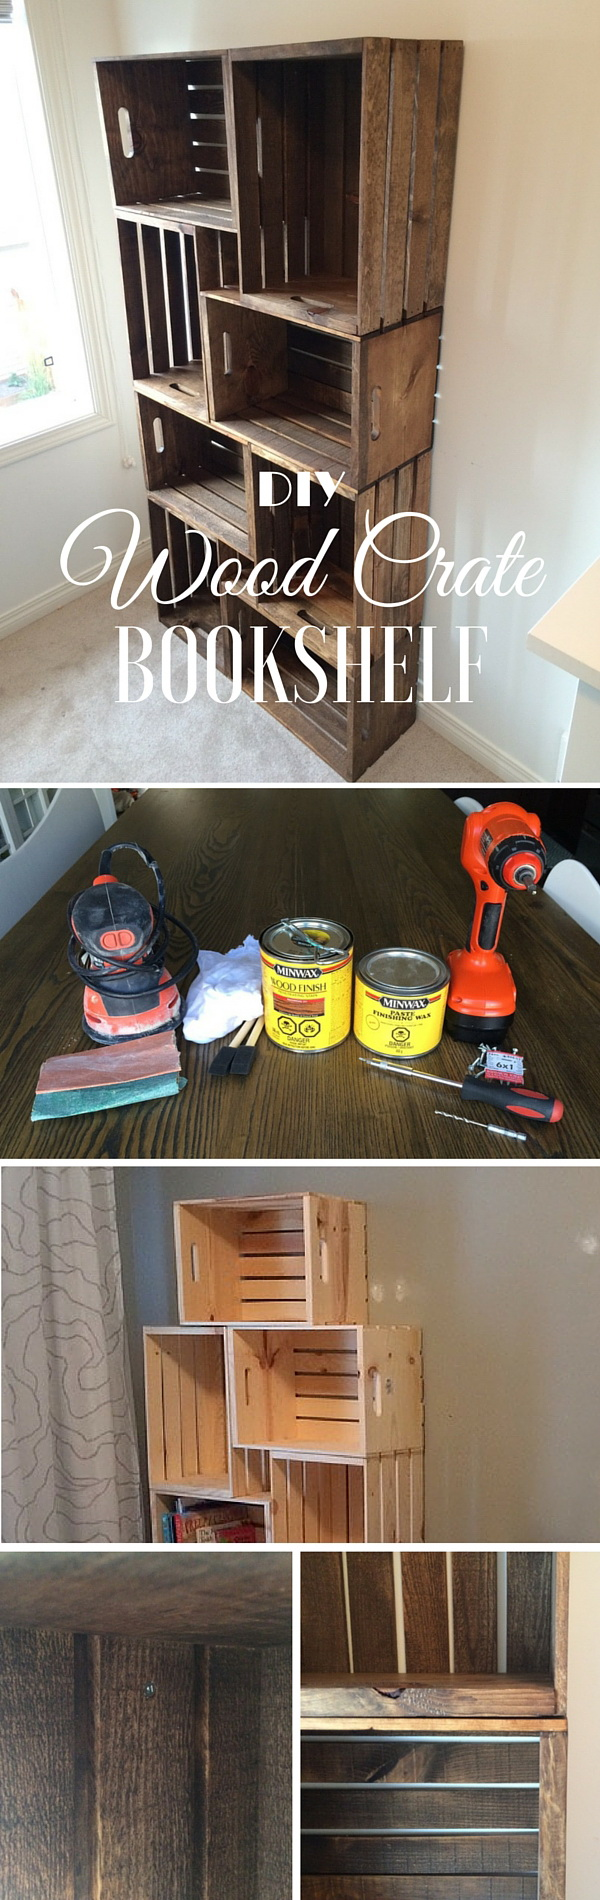 DIY Crate Bookshelf. Wood crates are one solution to both time and money issues for the DIY furniture and decorations for the home. Wood crate furniture can also give a warm, rustic feel to your business!